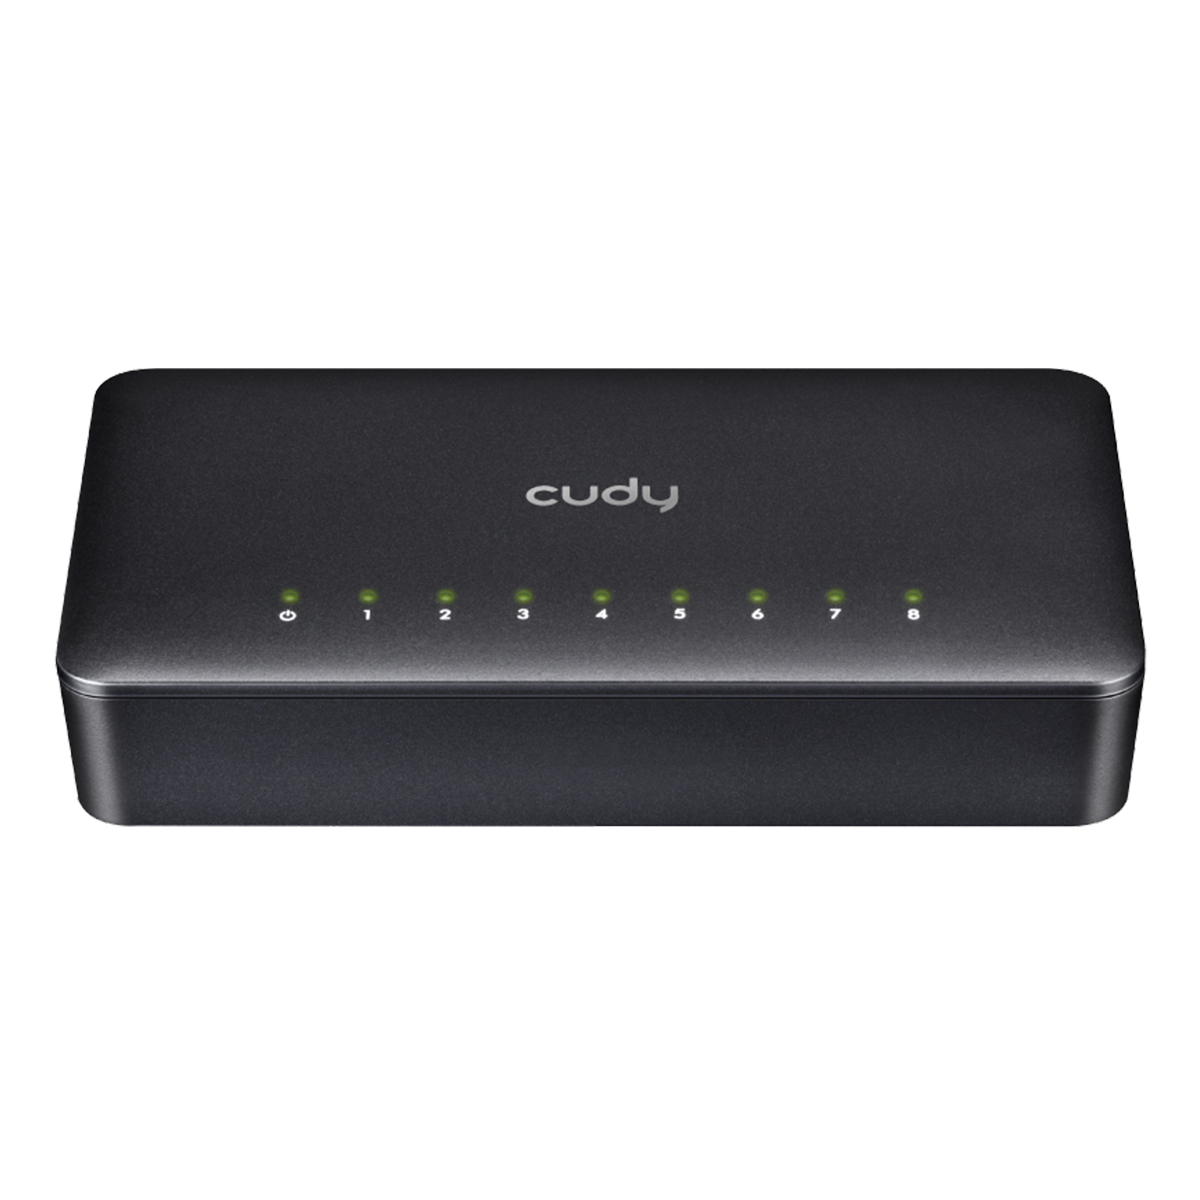 Cudy Multiport-switch med 8 portar, 10/100Mbps